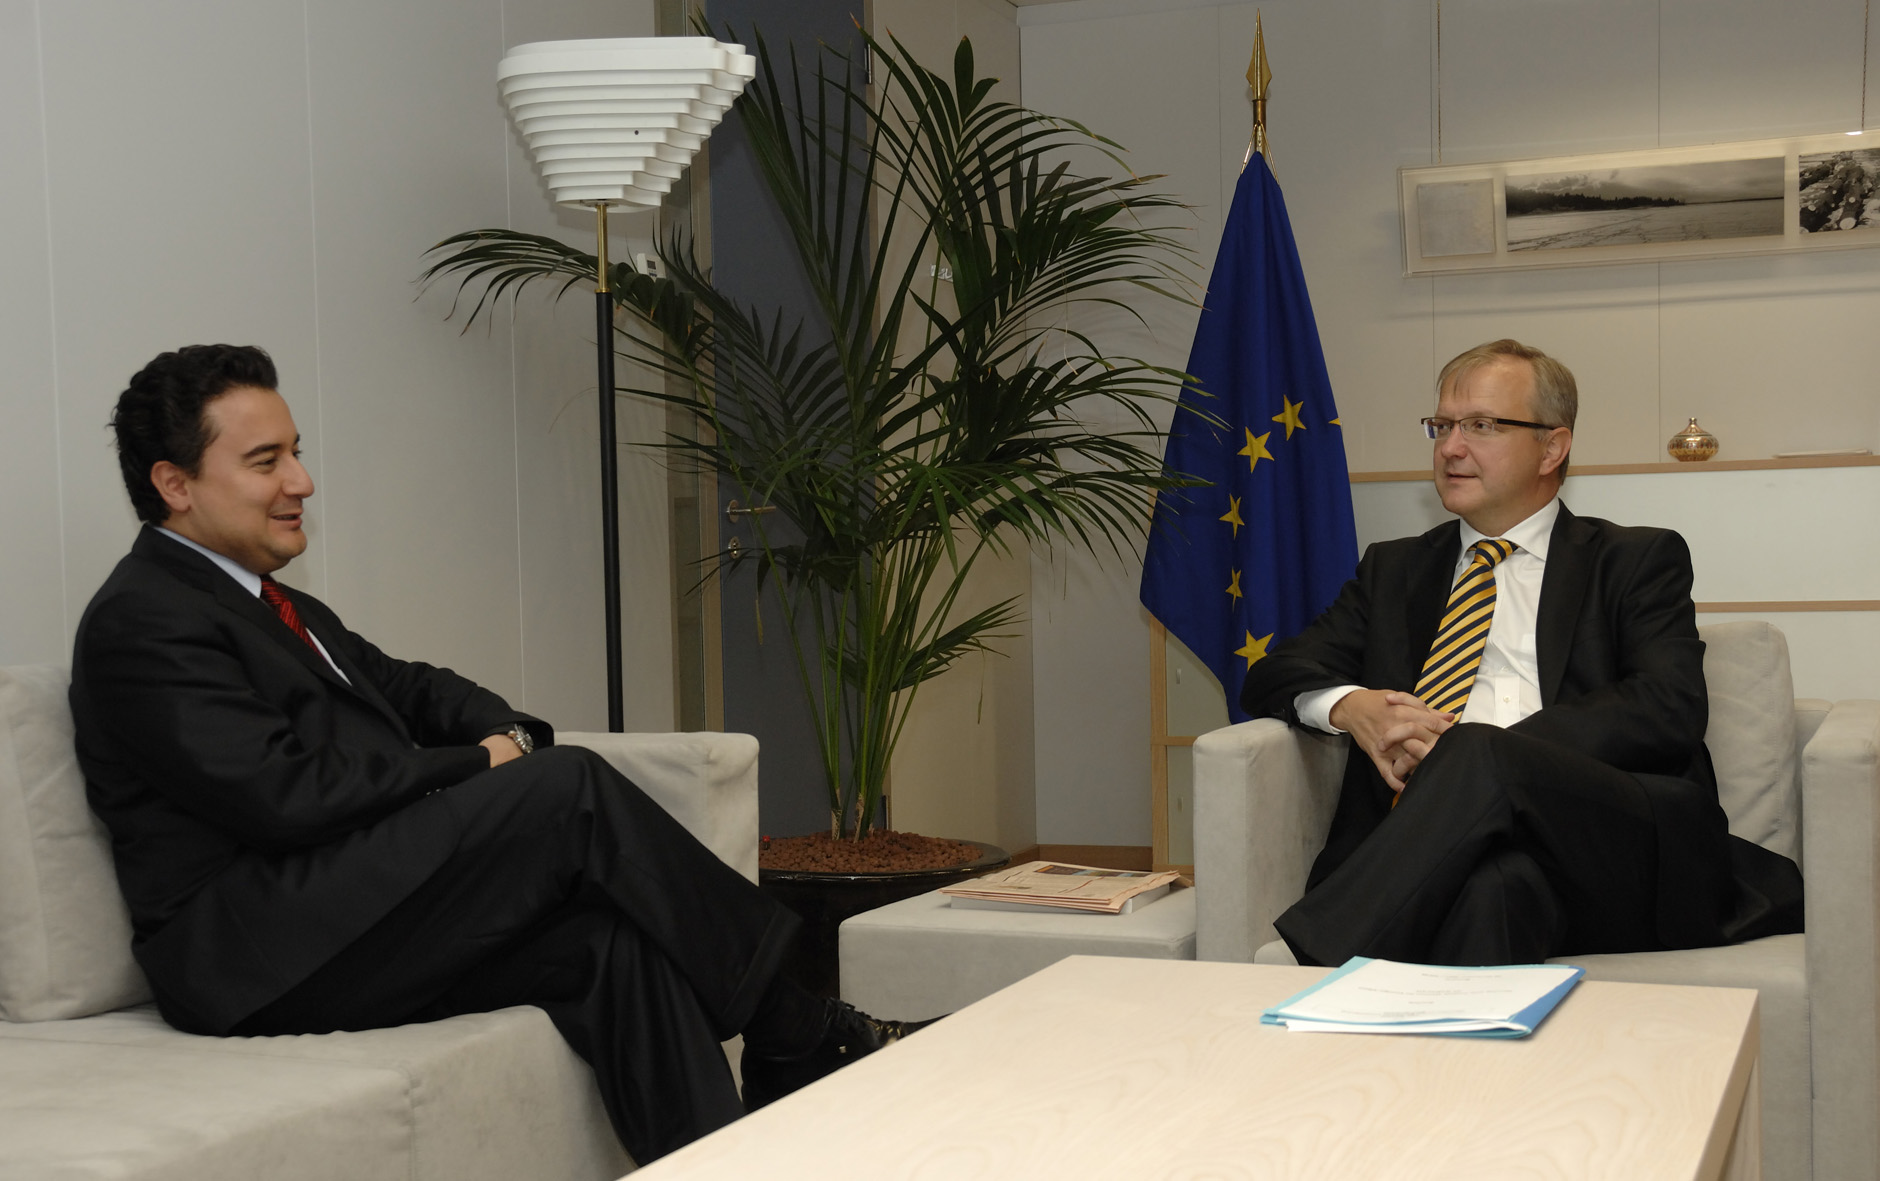 Visit by Ali Babacan, Turkish Minister for Economy, to the EC